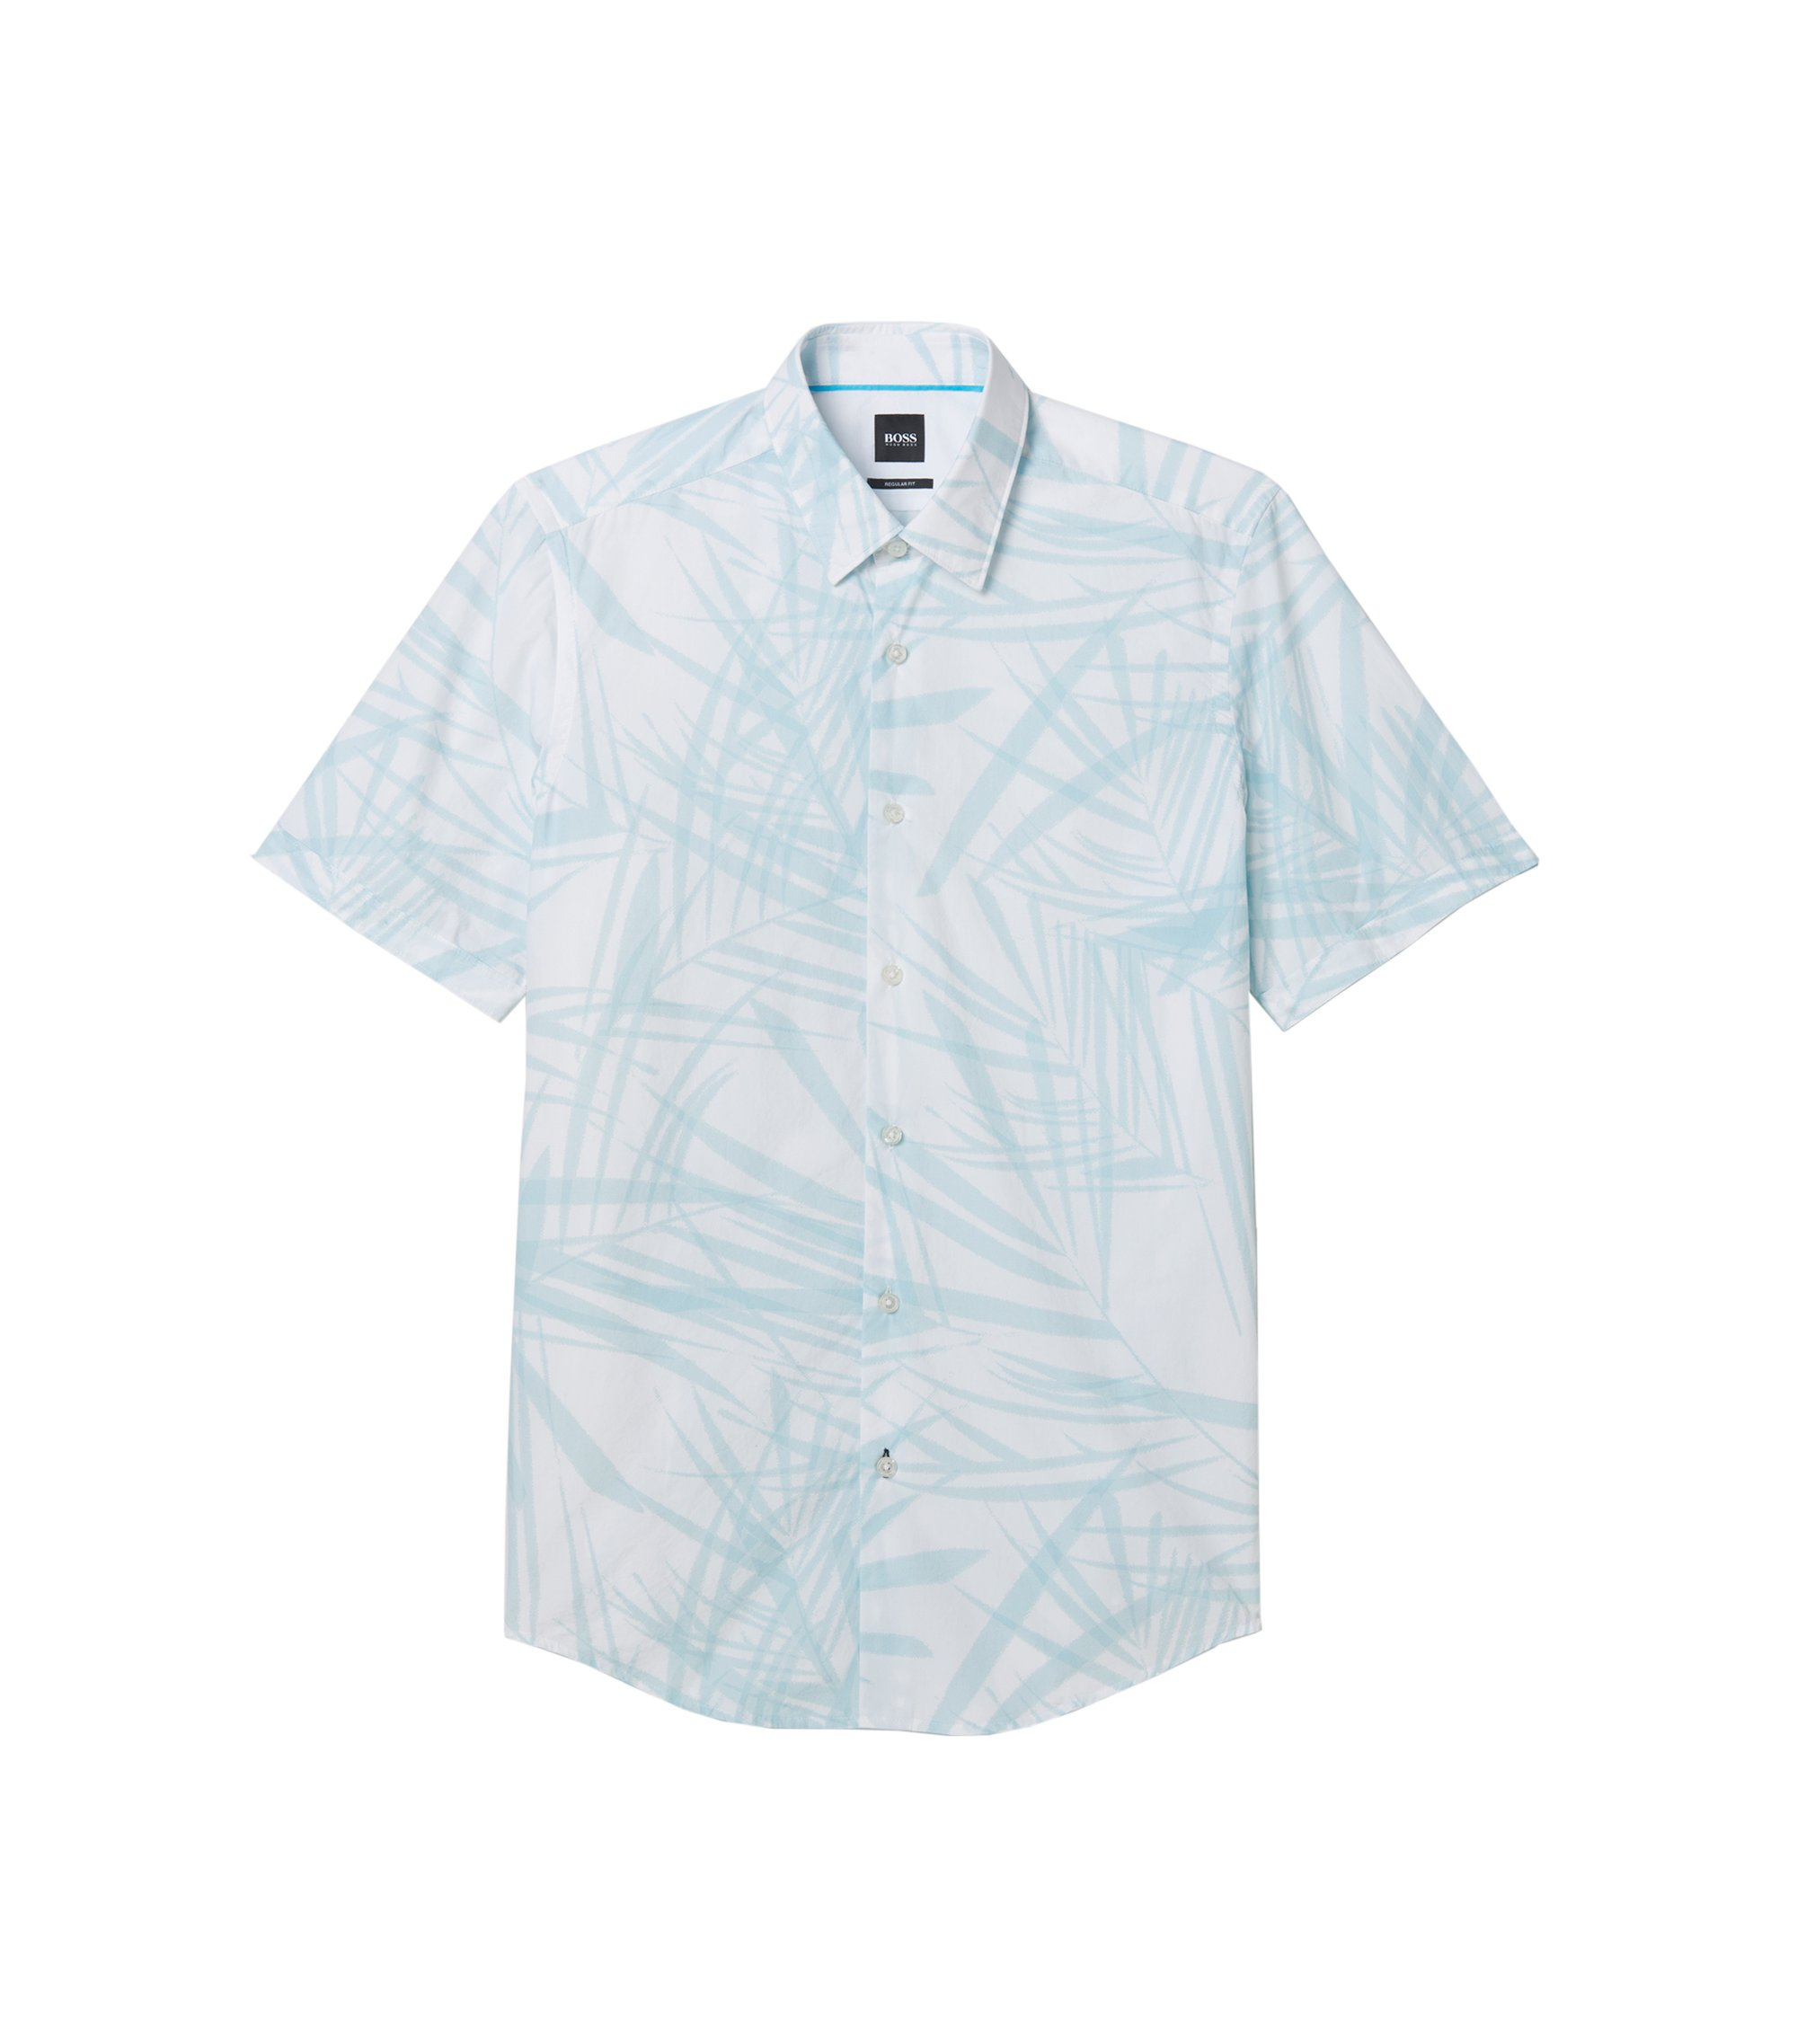 Palm Print Cotton Shirt, Regular-Fit  | Luka, Light Blue